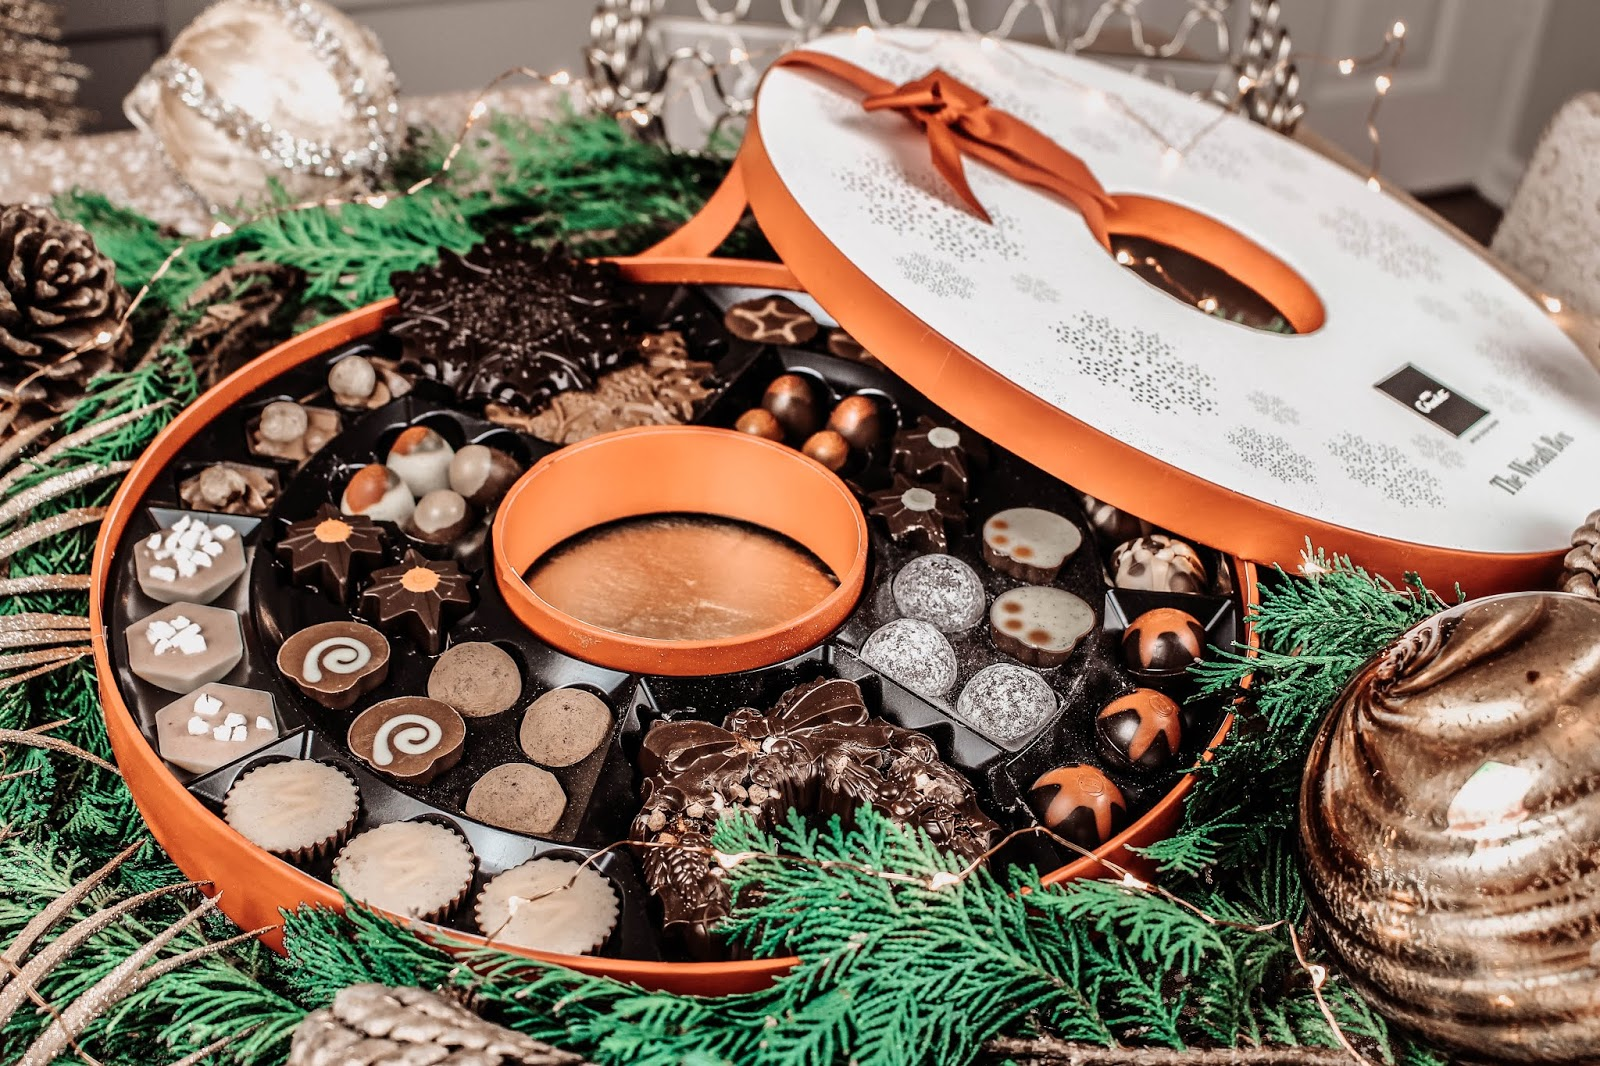 Hotel Chocolat Christmas Wreath In A Box Lifestyle Blog